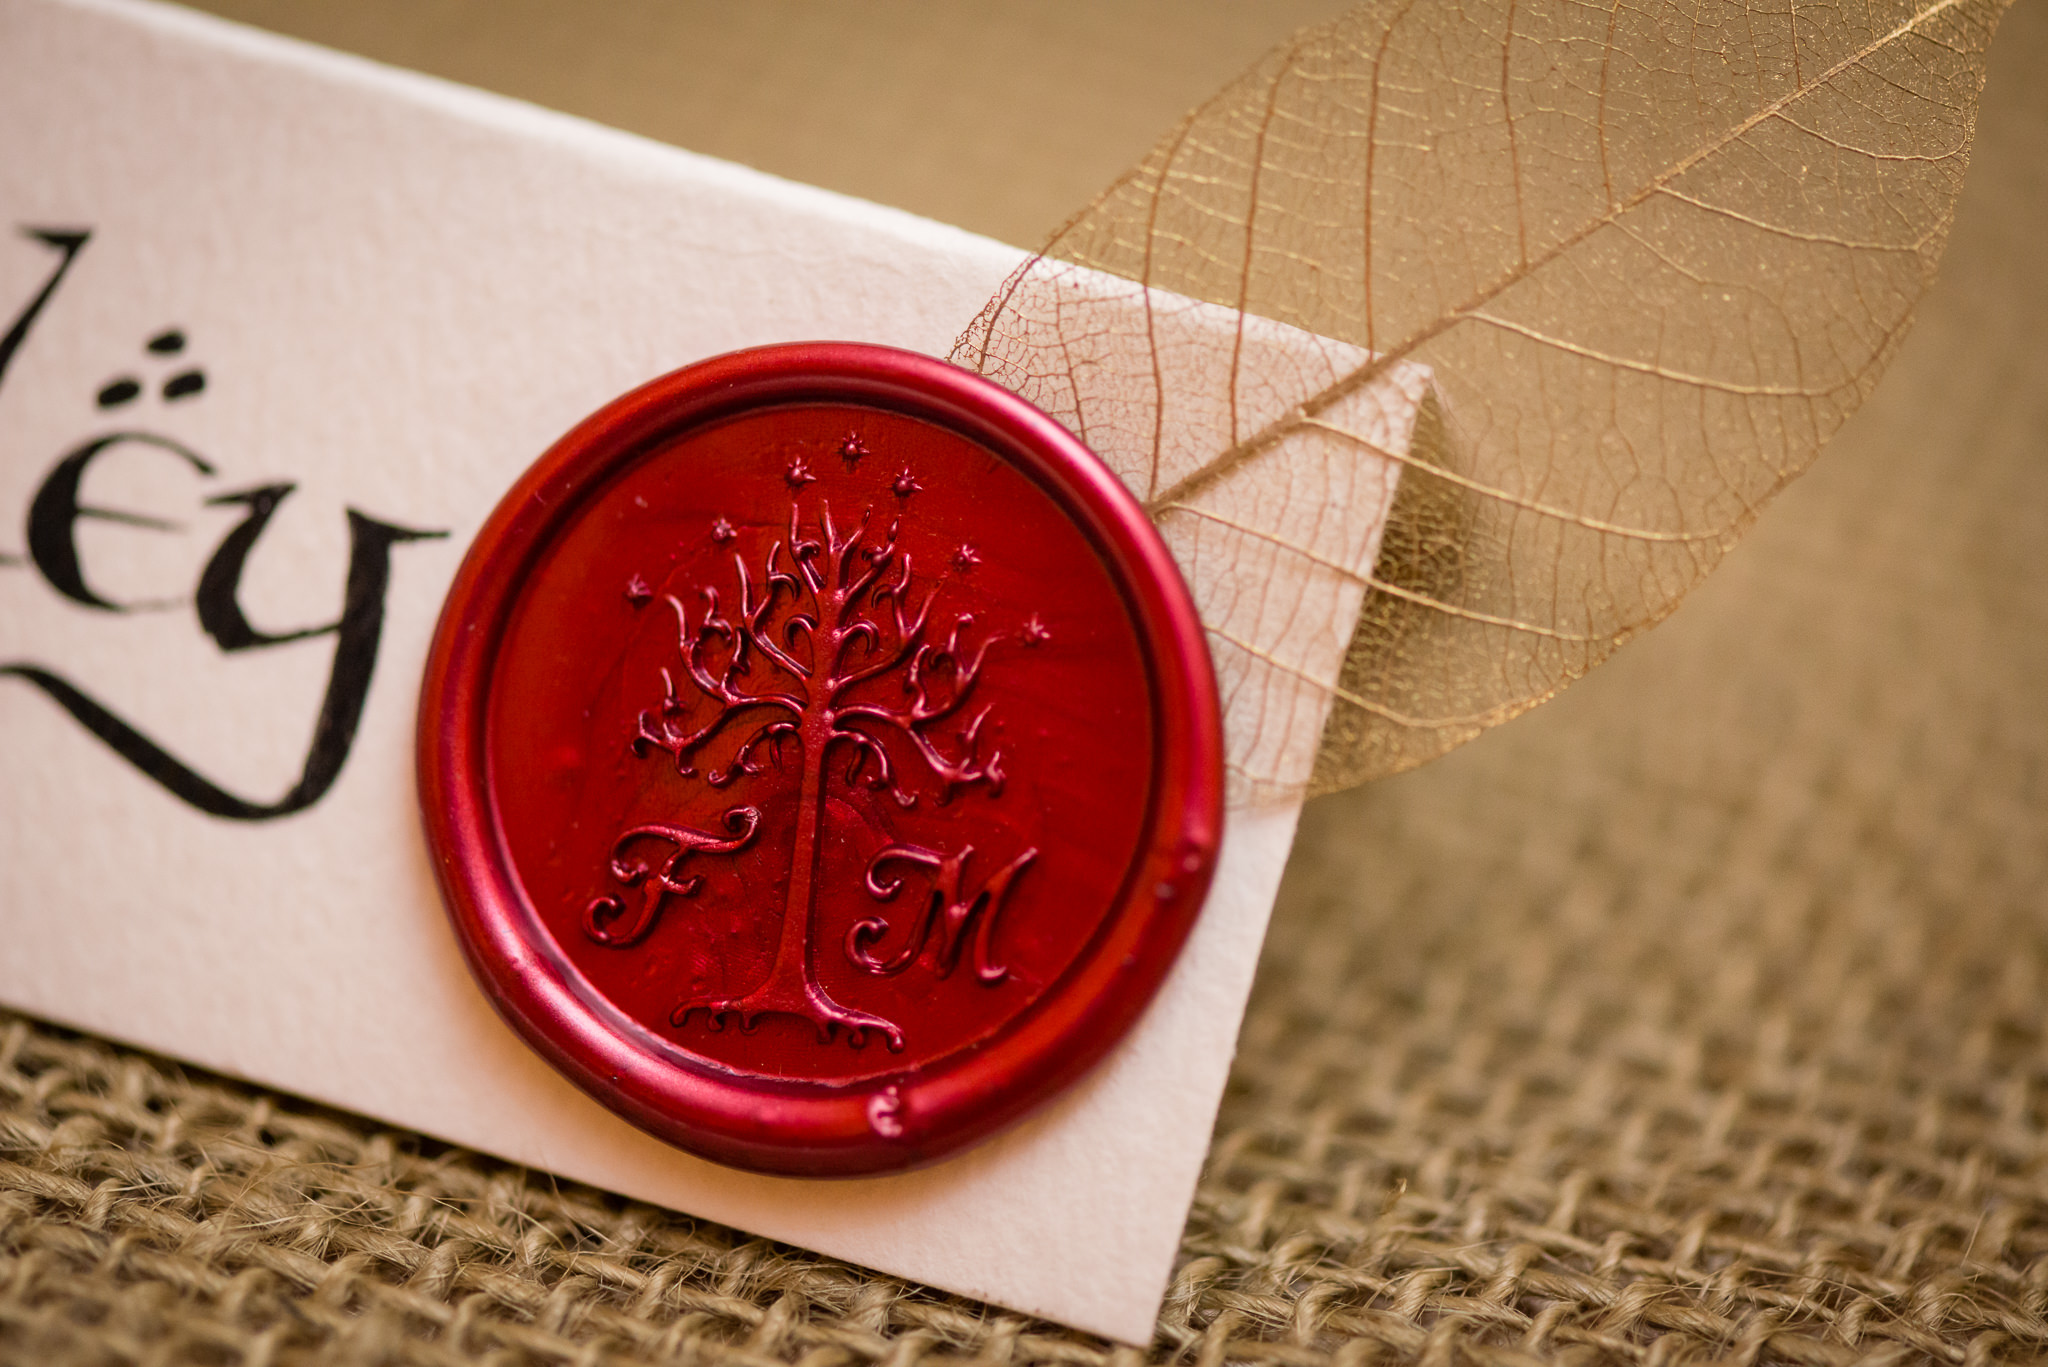 A detail shot of the wax seal on the name place settings